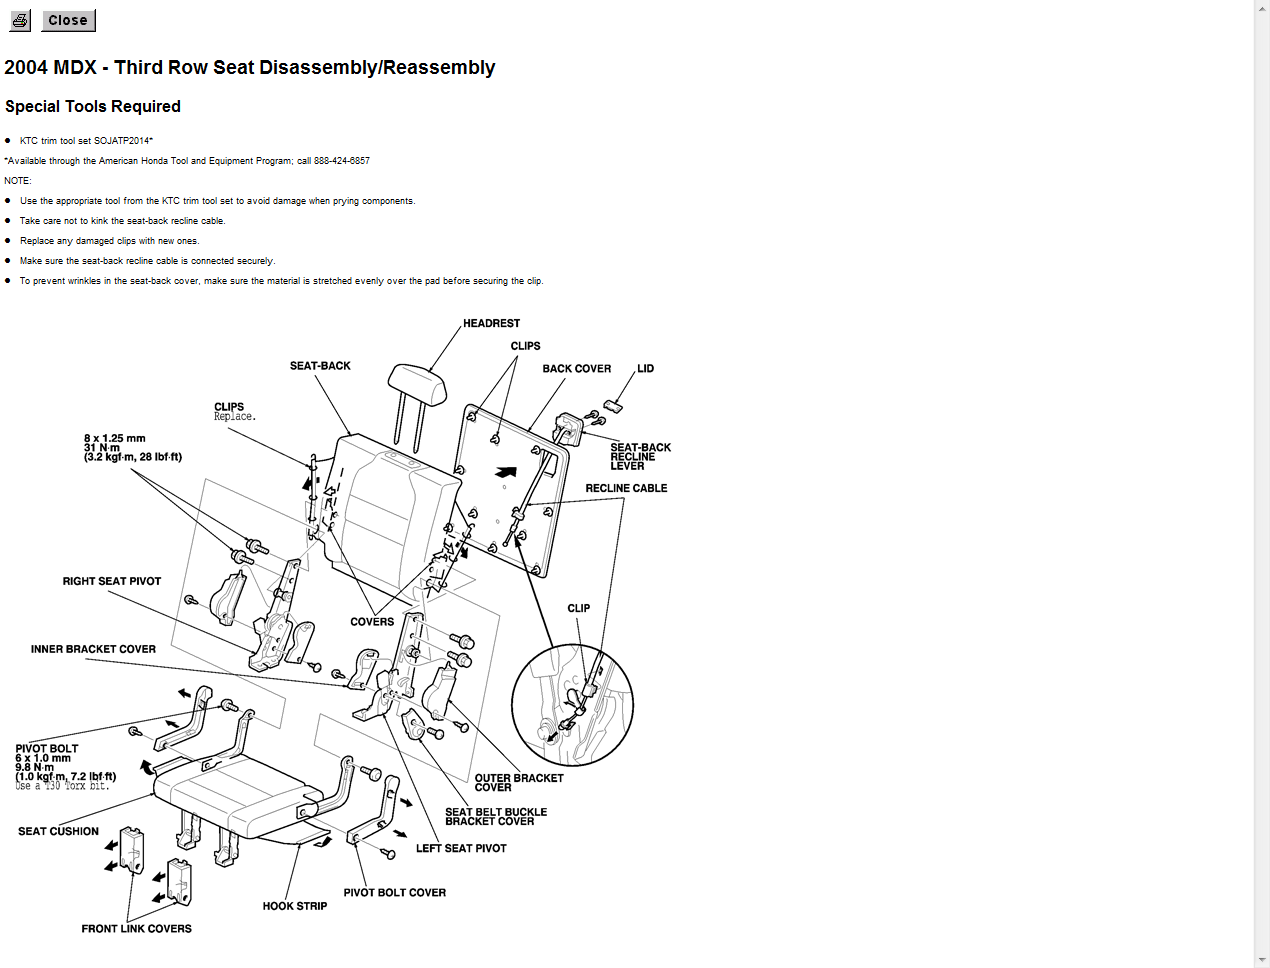 Nissan Z Engine Diagram Sentra Wiring Html further Ford 2 5 V 6 Firing Order And Diagram moreover How Acura Mdx 2004 Replace Driver Door Actuator 919893 as well 2004 Acura Tsx Fuse Box Diagram also 3 4 V 6 Vin E Firing Order. on acura mdx